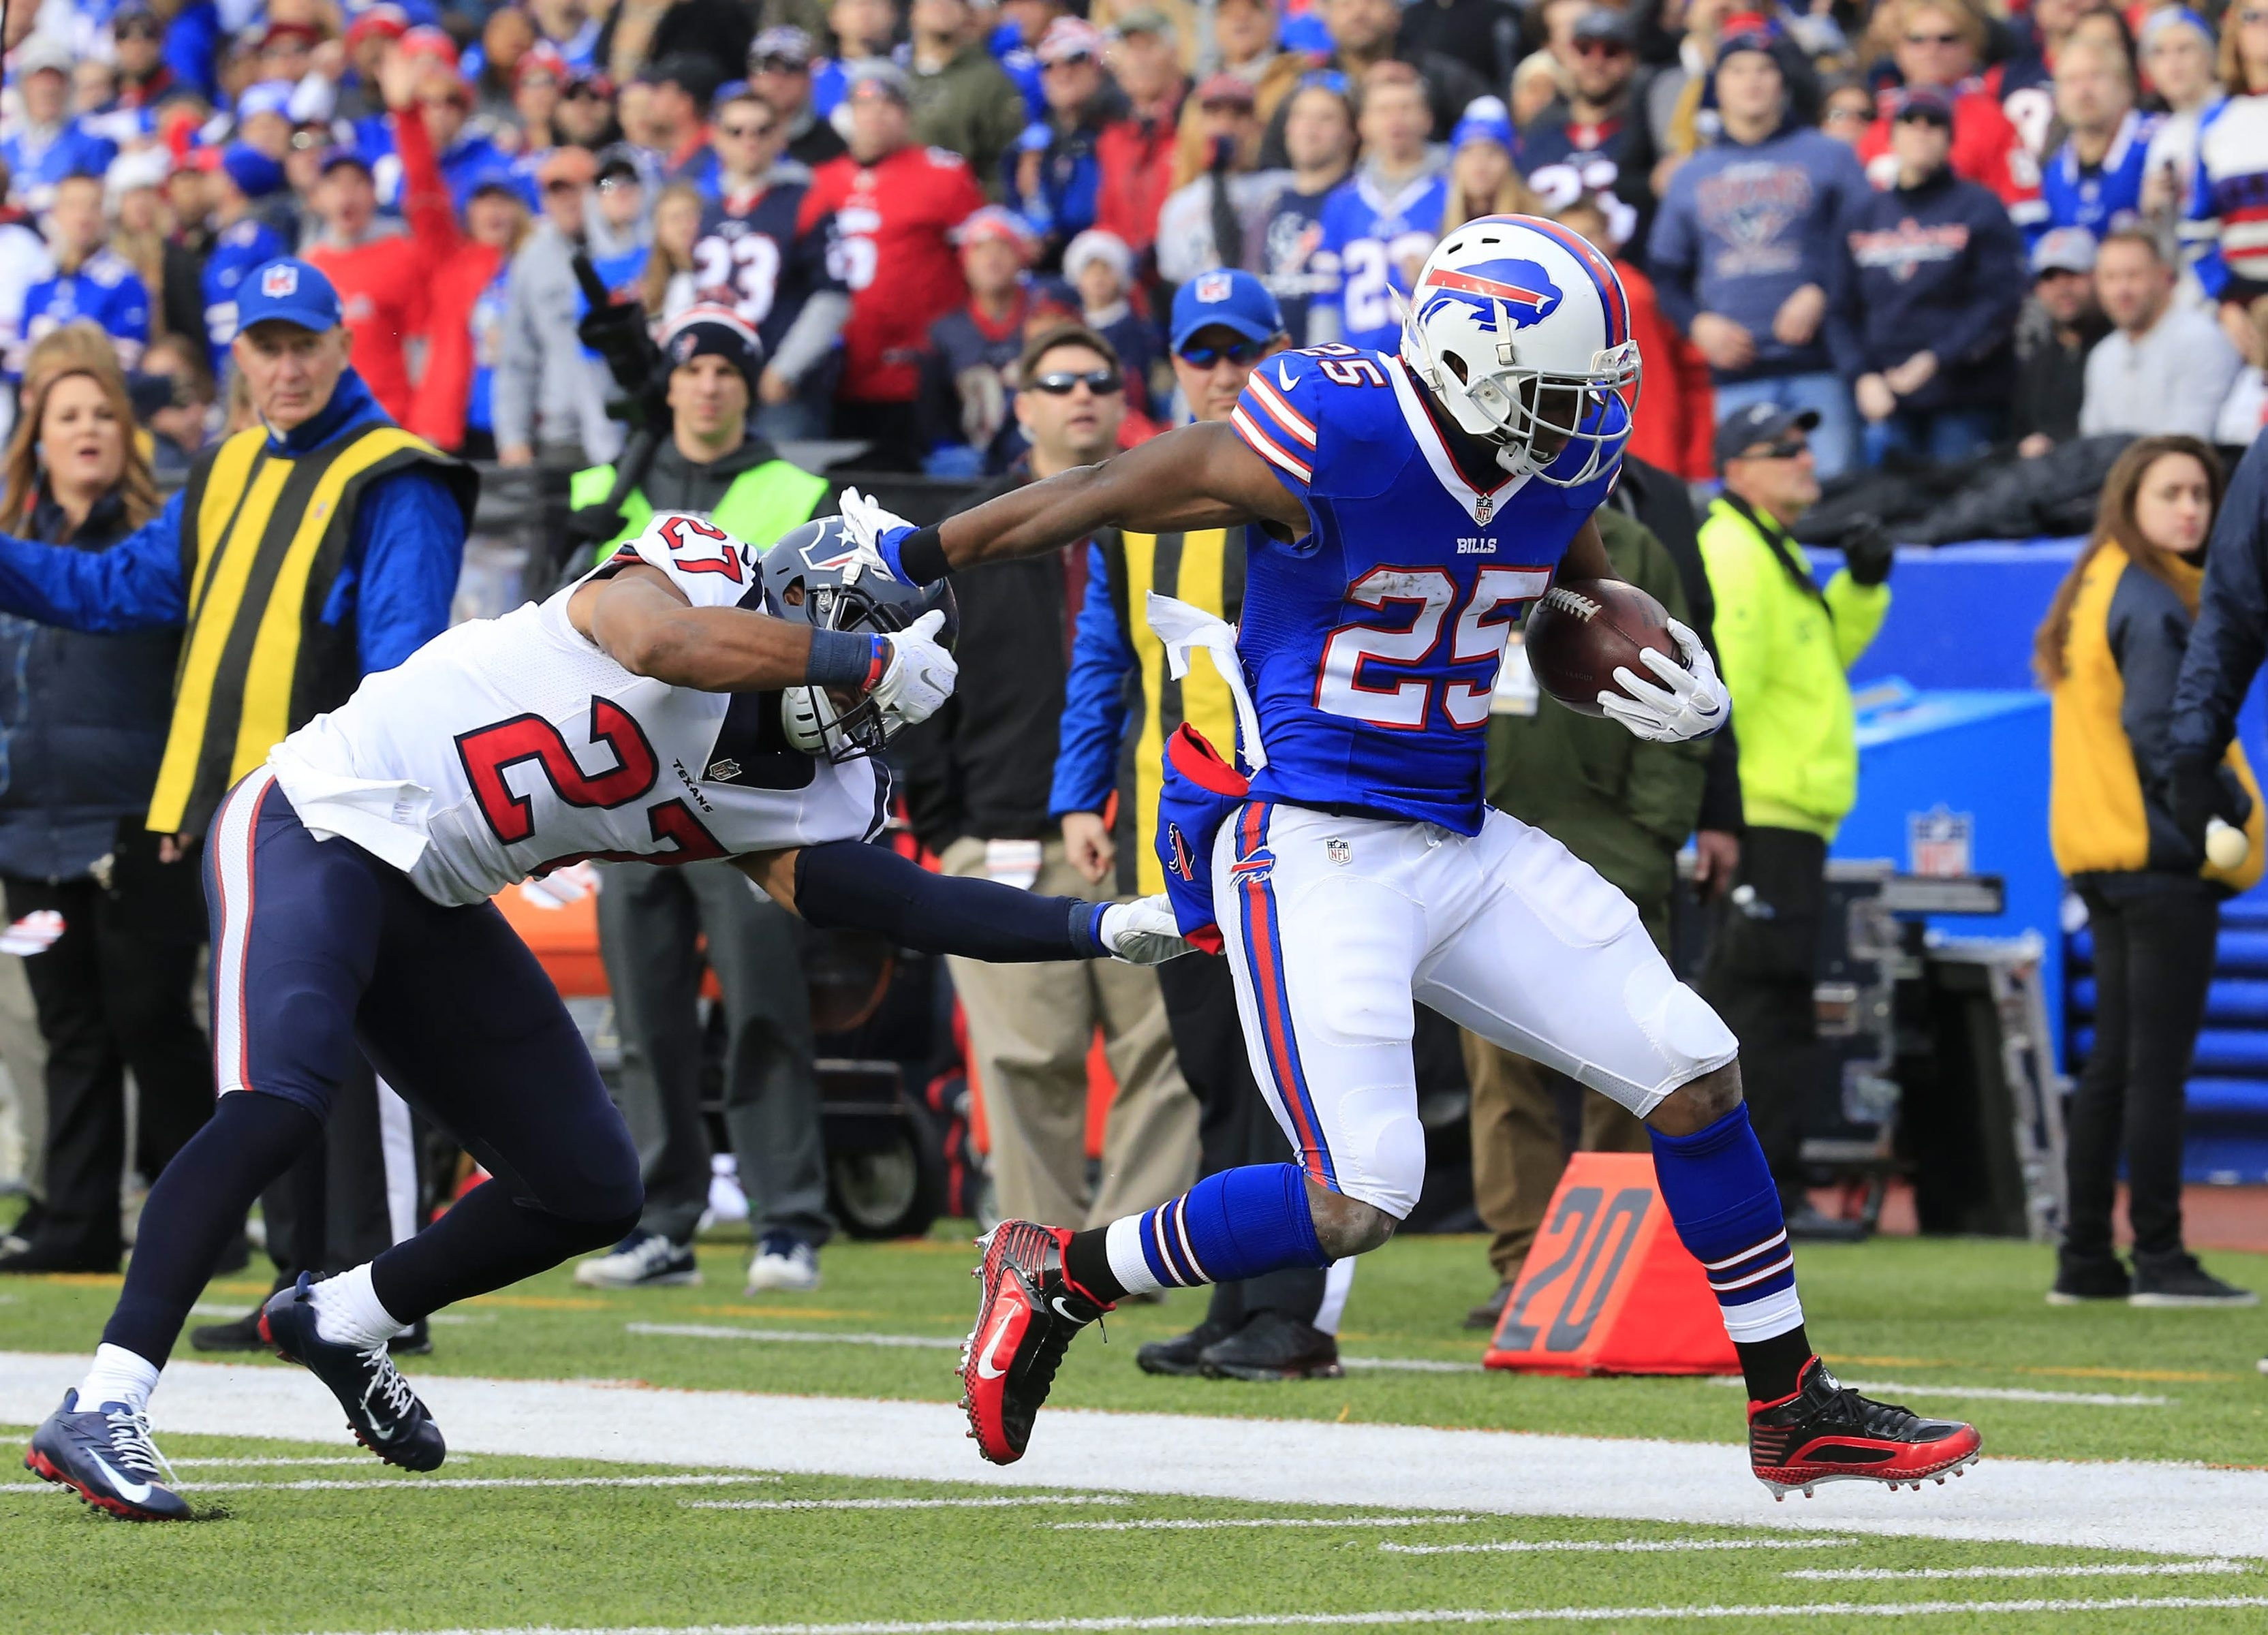 Bills running back LeSean McCoy gets pushed out of bounds by Texans safety Quintin Demps in the first quarter. McCoy racked up 112 rushing yards for the third time this season.